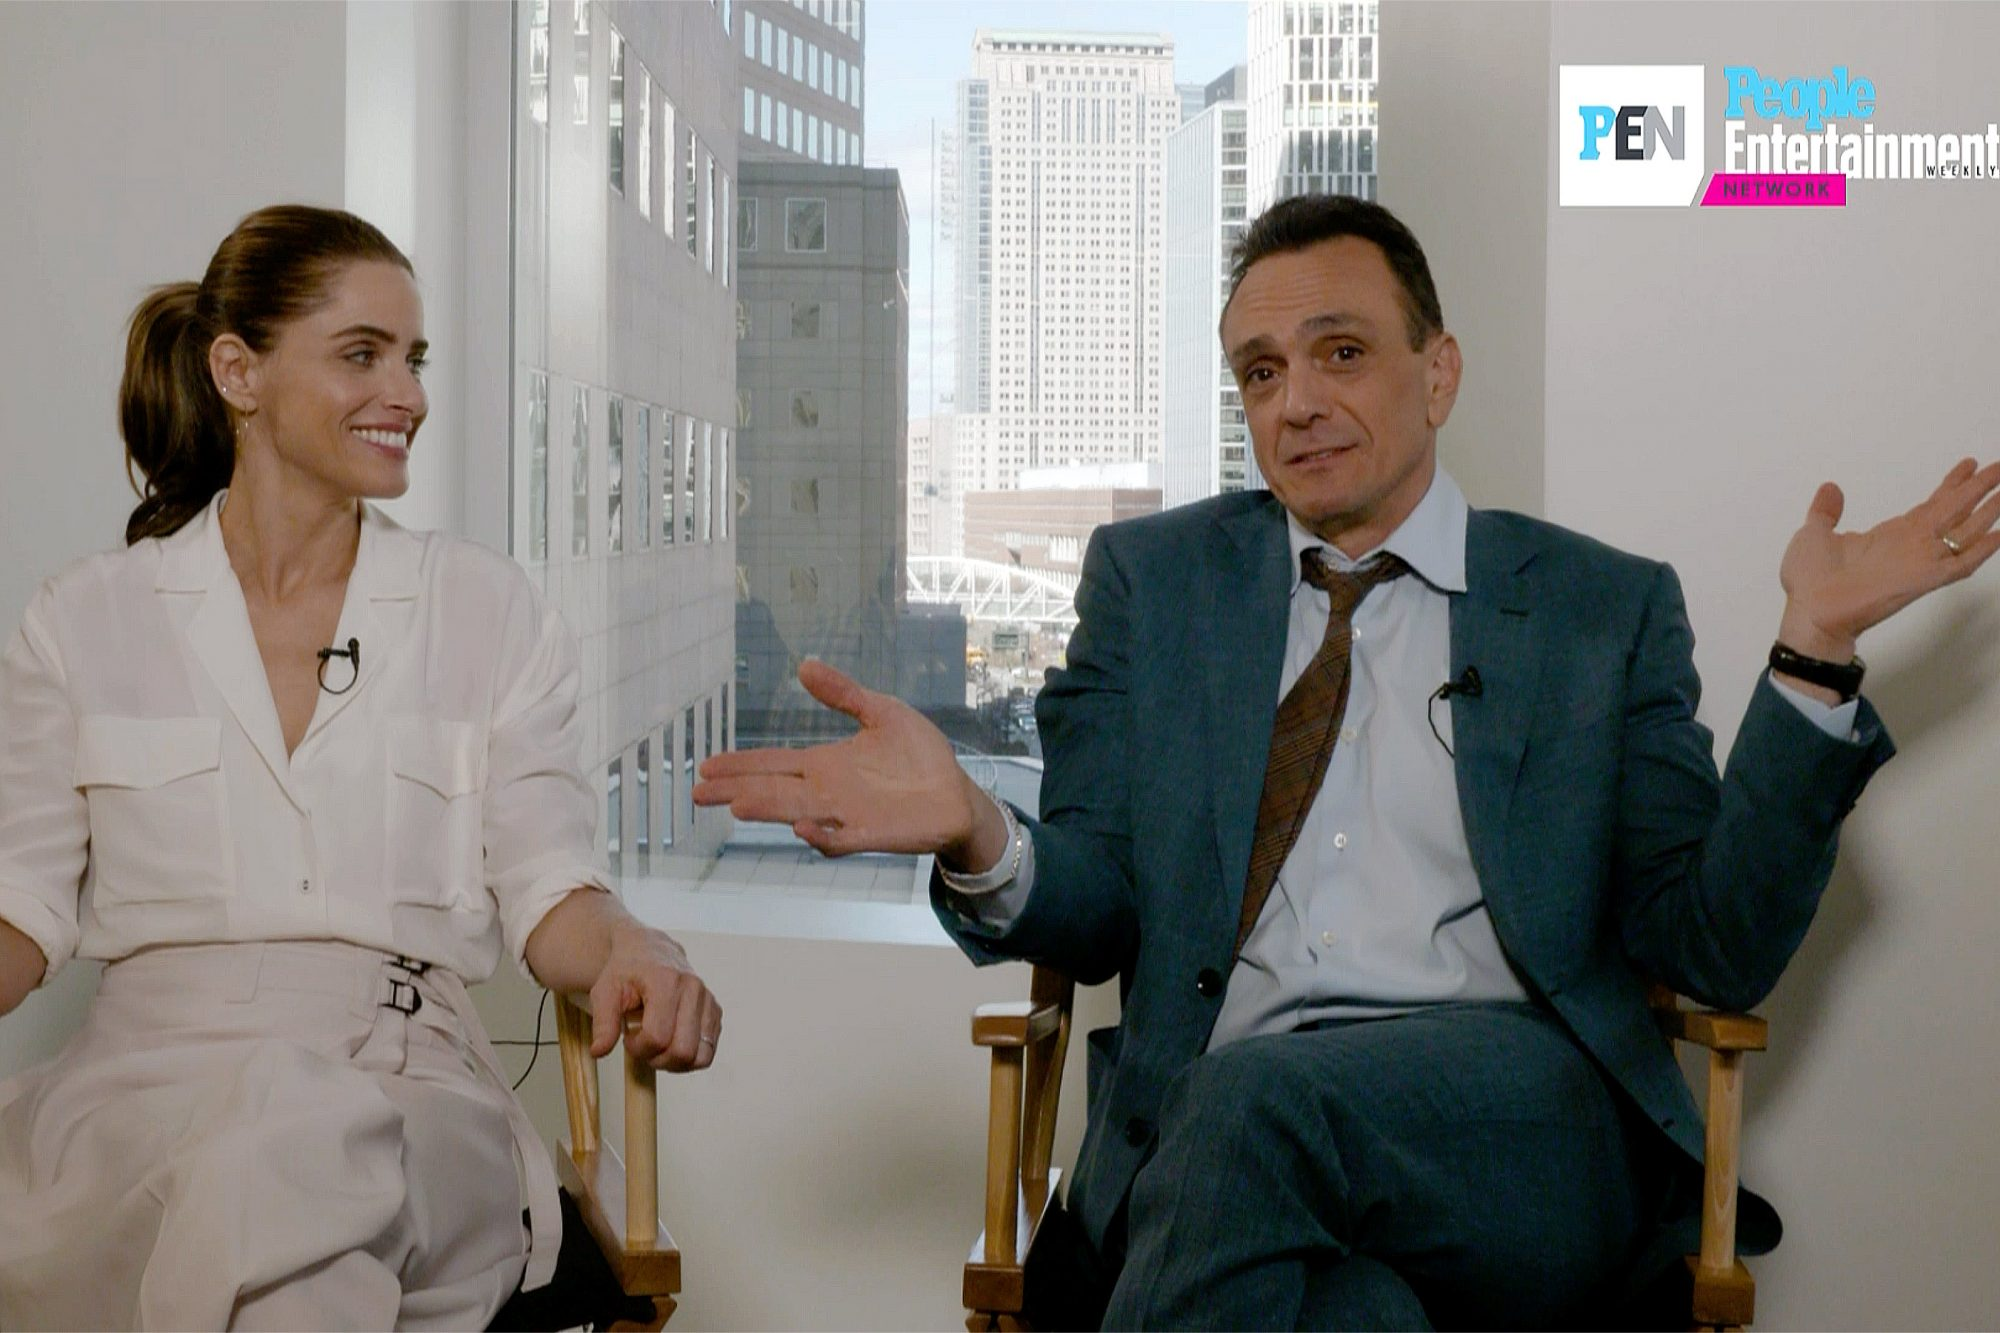 Amanda Peet and Hank Azaria